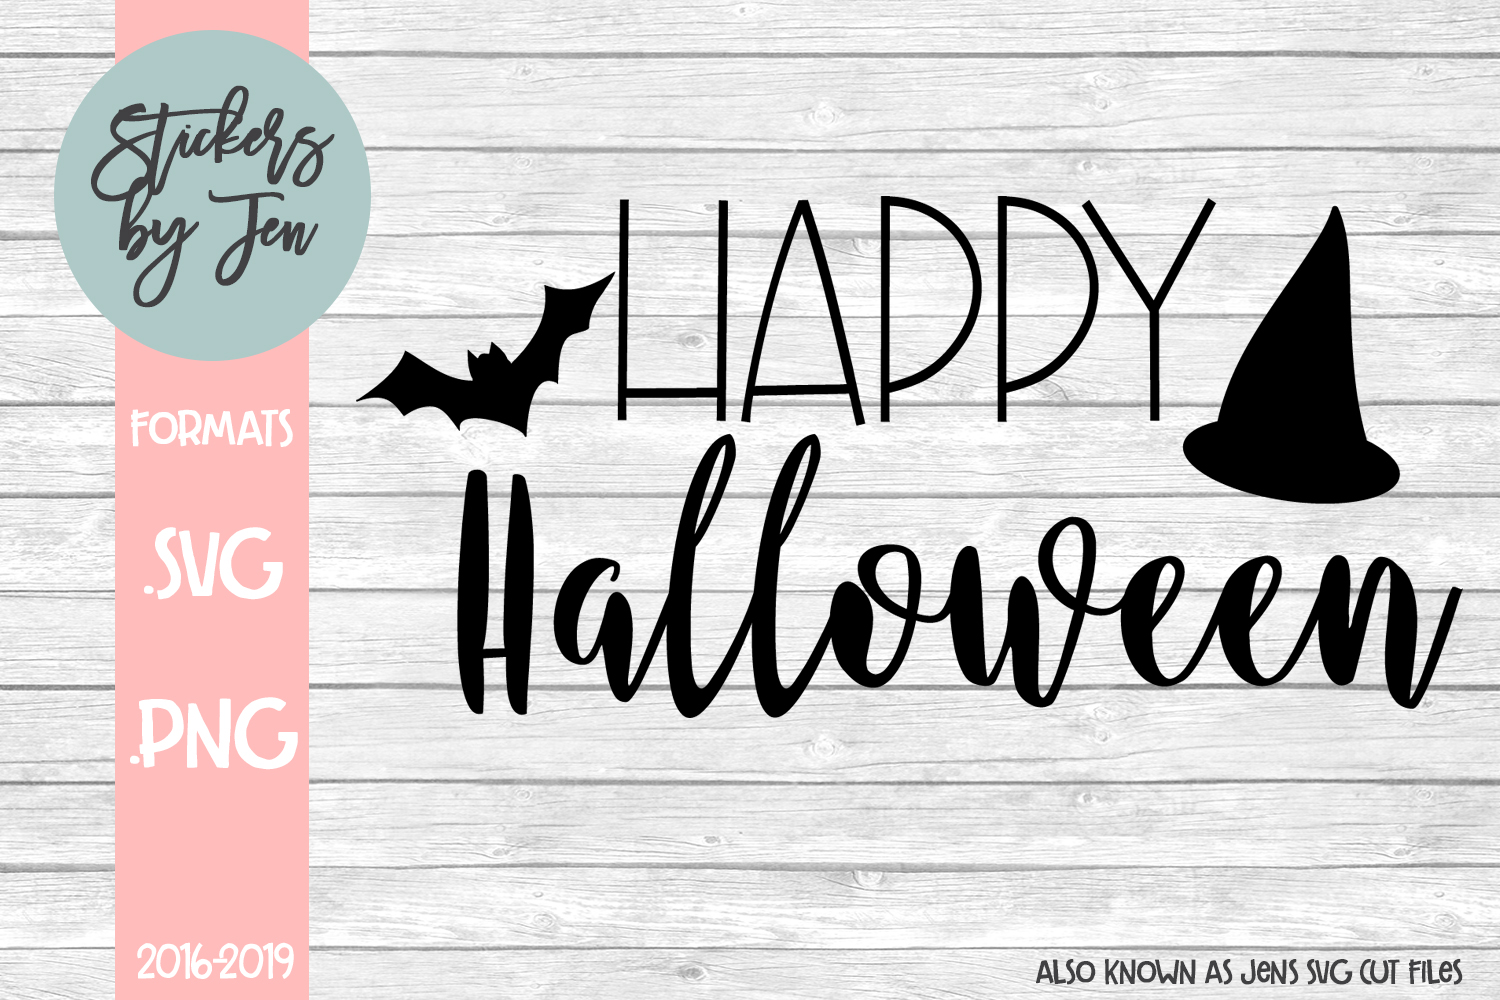 Download Free Happy Halloween Graphic By Stickers By Jennifer Creative Fabrica for Cricut Explore, Silhouette and other cutting machines.